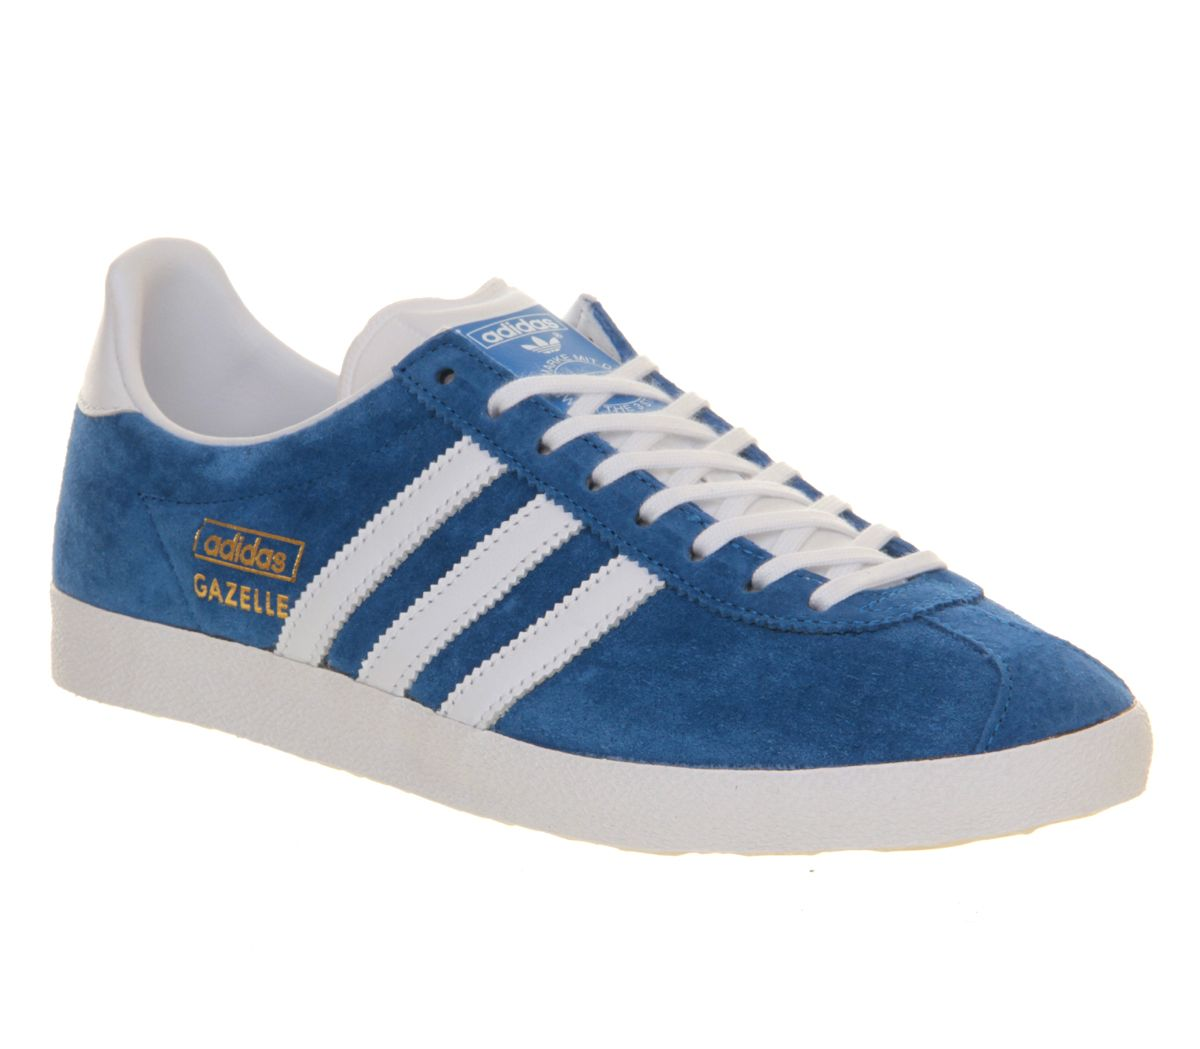 b18be3aac8a Adidas Gazelle Og Air Force Blue White - His trainers